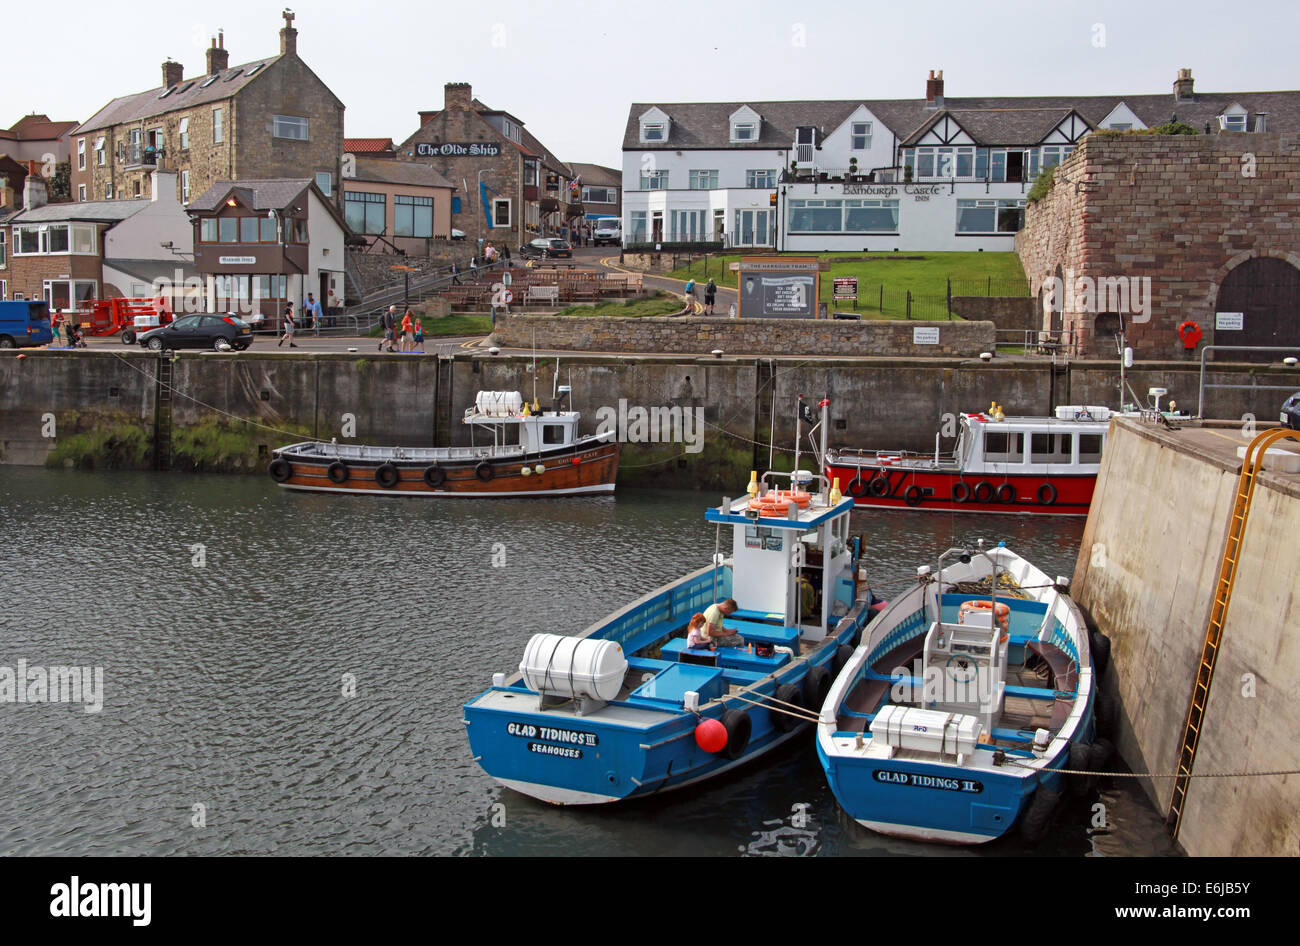 Boats,in,Seahouses,harbour,Northumbria,NE,England,UK,North East,water,sea,dock,red,blue,red boats,blue boats,boats,coast,dock,harbor,harbour,northumberland,sea,seahouses,building,buildings,houses,house,fishing,GB,Great Britain,British,history,historic,tourist,travel,tourism,summer,gotonysmith,ships,ship,pier,English,castle hotel,hotel,B&B,grass,EU,Fishing,quota,Brexit,freedom,British,waters,territory,territorial,rights,borders,border,sovereignty,Buy Pictures of,Buy Images Of,territorial waters